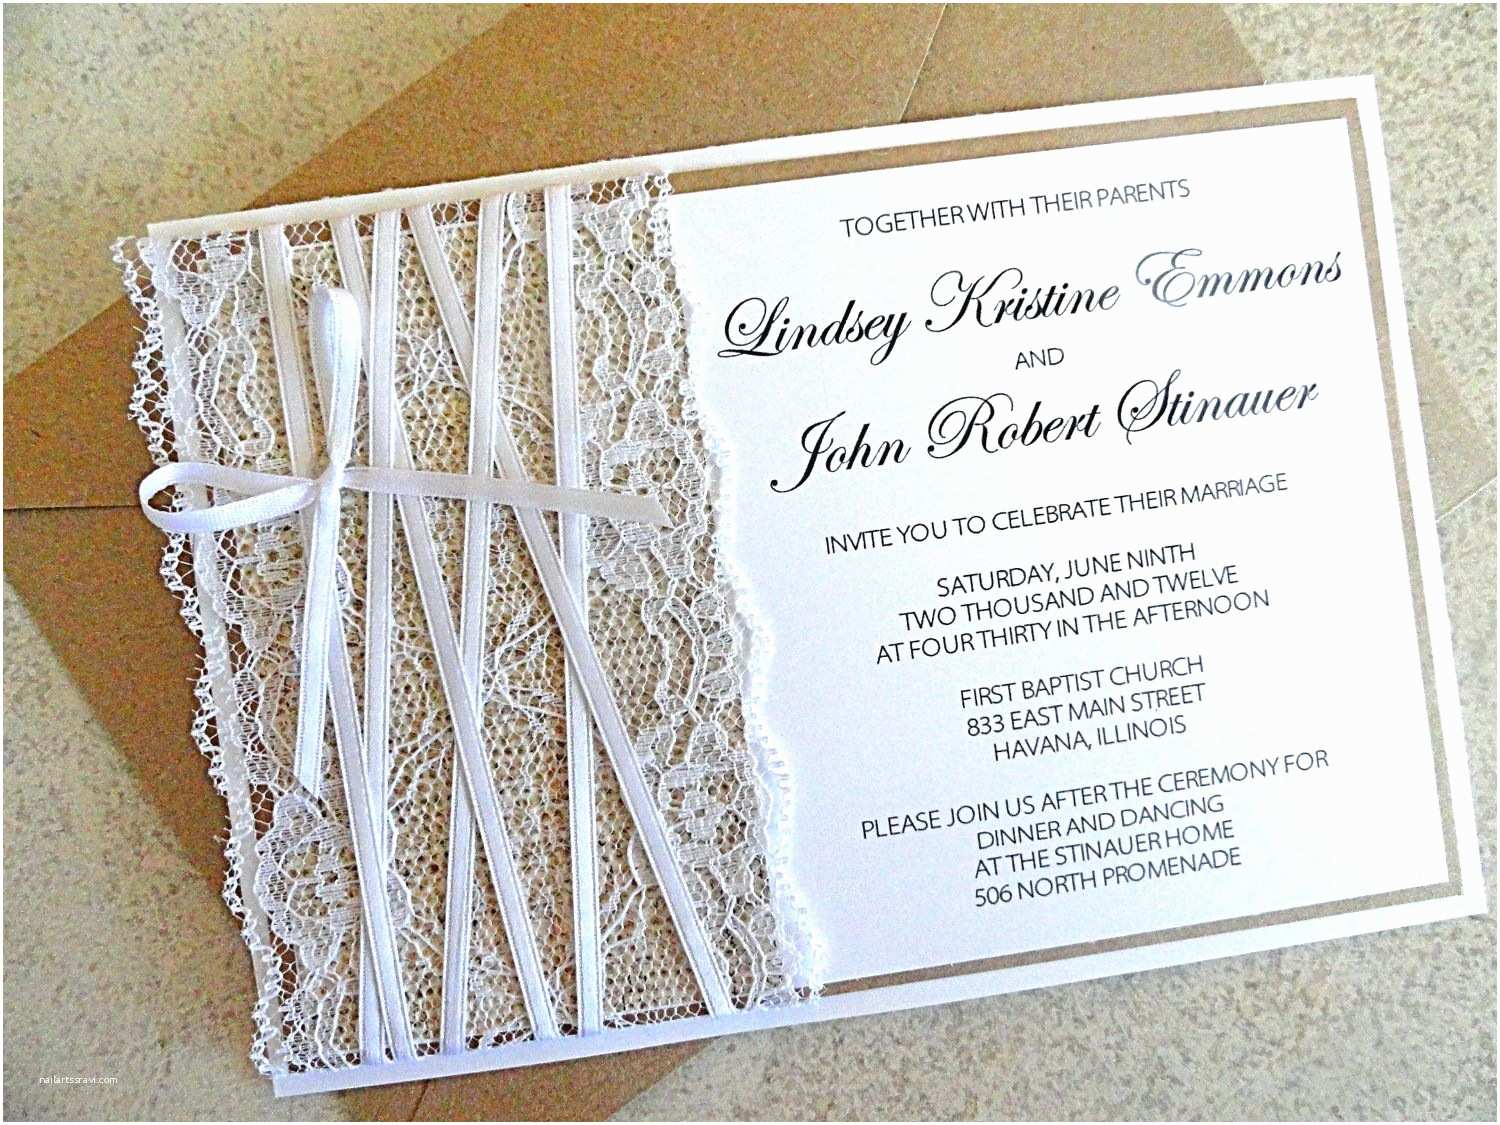 How to Print Out Wedding Invitations Diy Wedding Shower Invitations Diy Bridal Shower